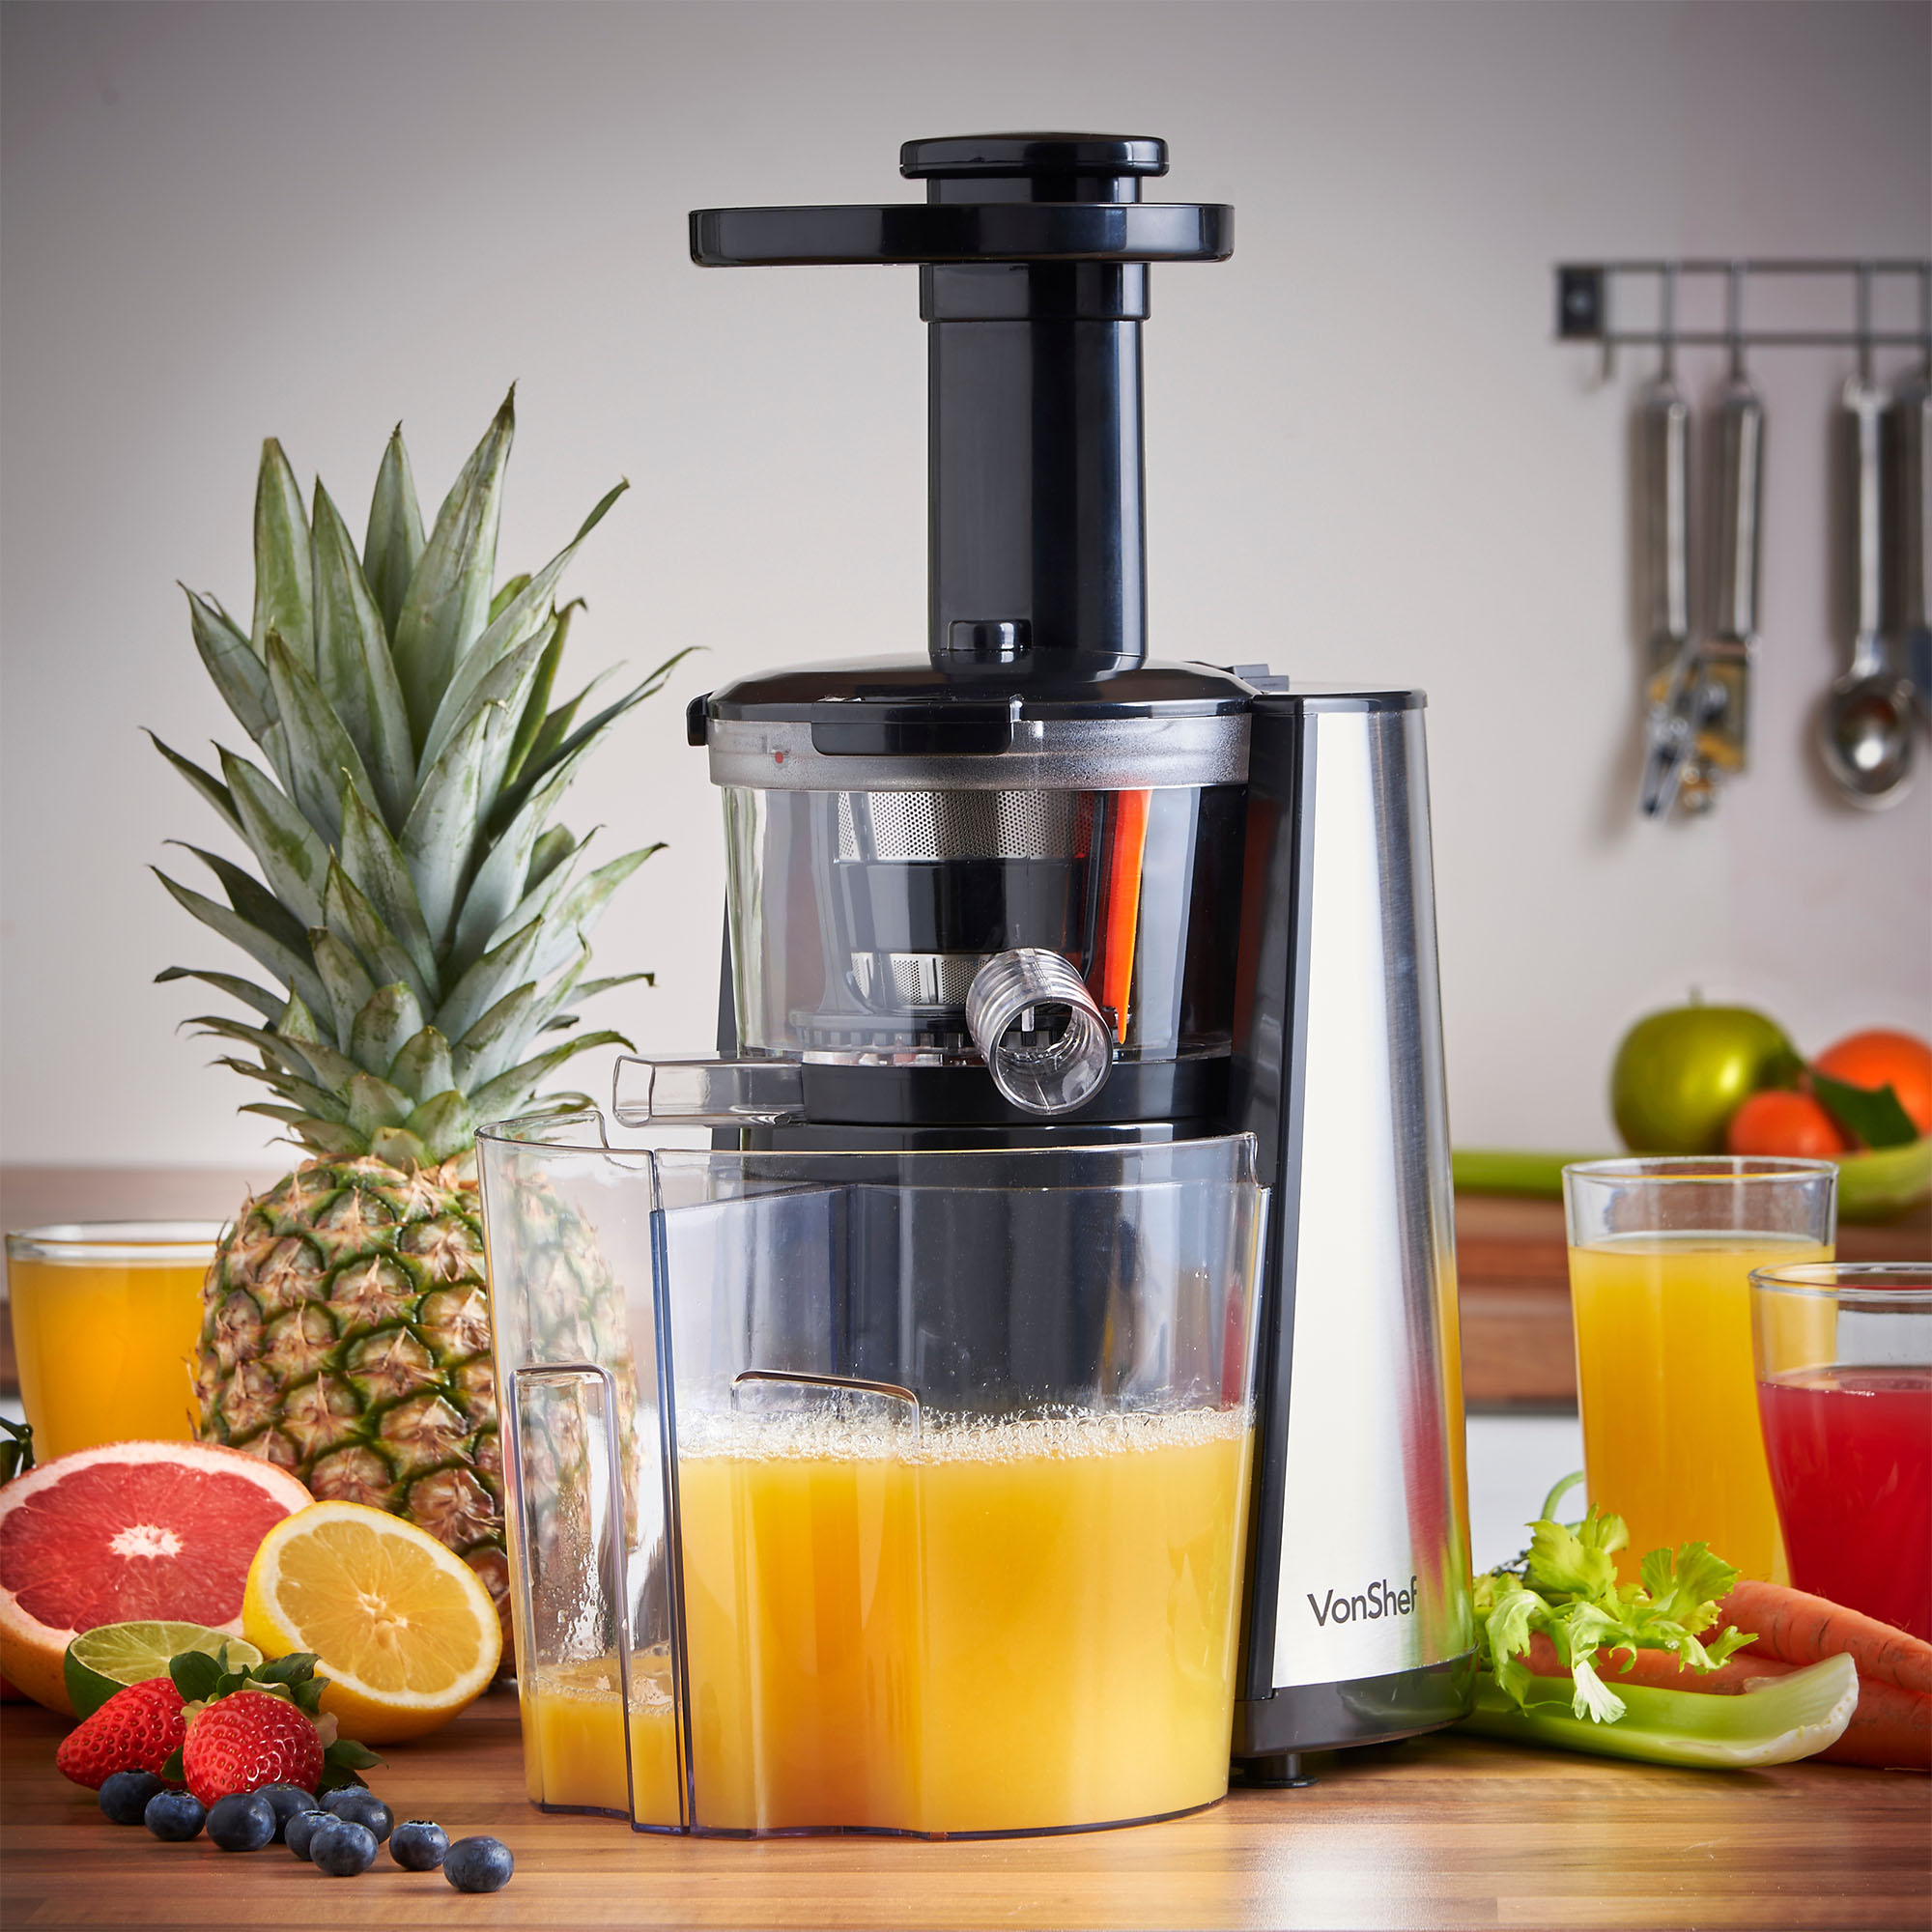 Vonshef Slow Juicer Review : vonShef 150W Electric Slow Masticating Single Auger Juicer Extractor